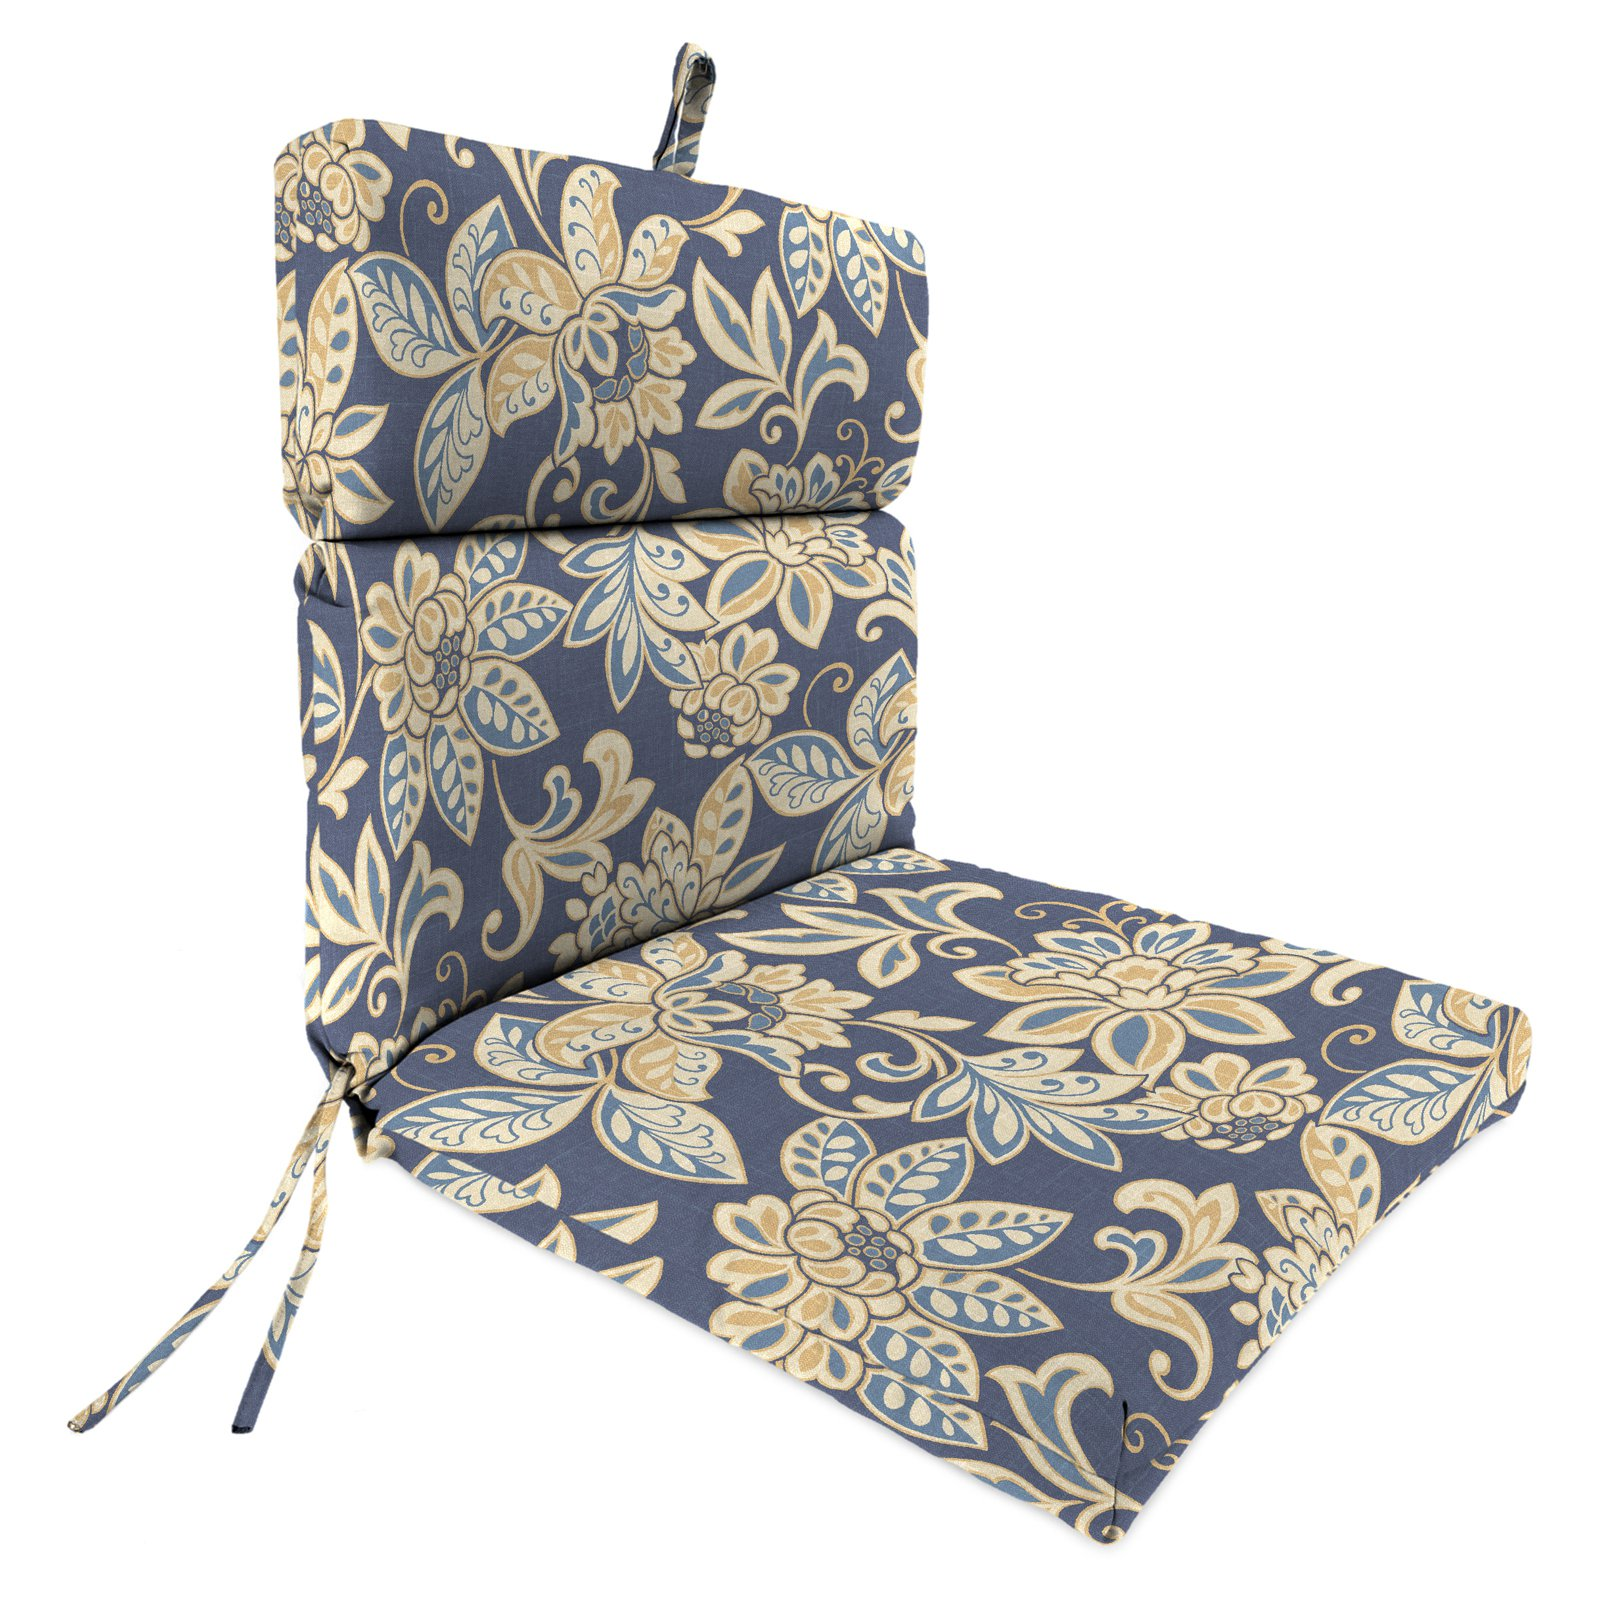 outdoor chair cushions jordan manufacturing 44 x 22 in. outdoor chair cushion - outdoor cushions  at hayneedle YSTOVUV